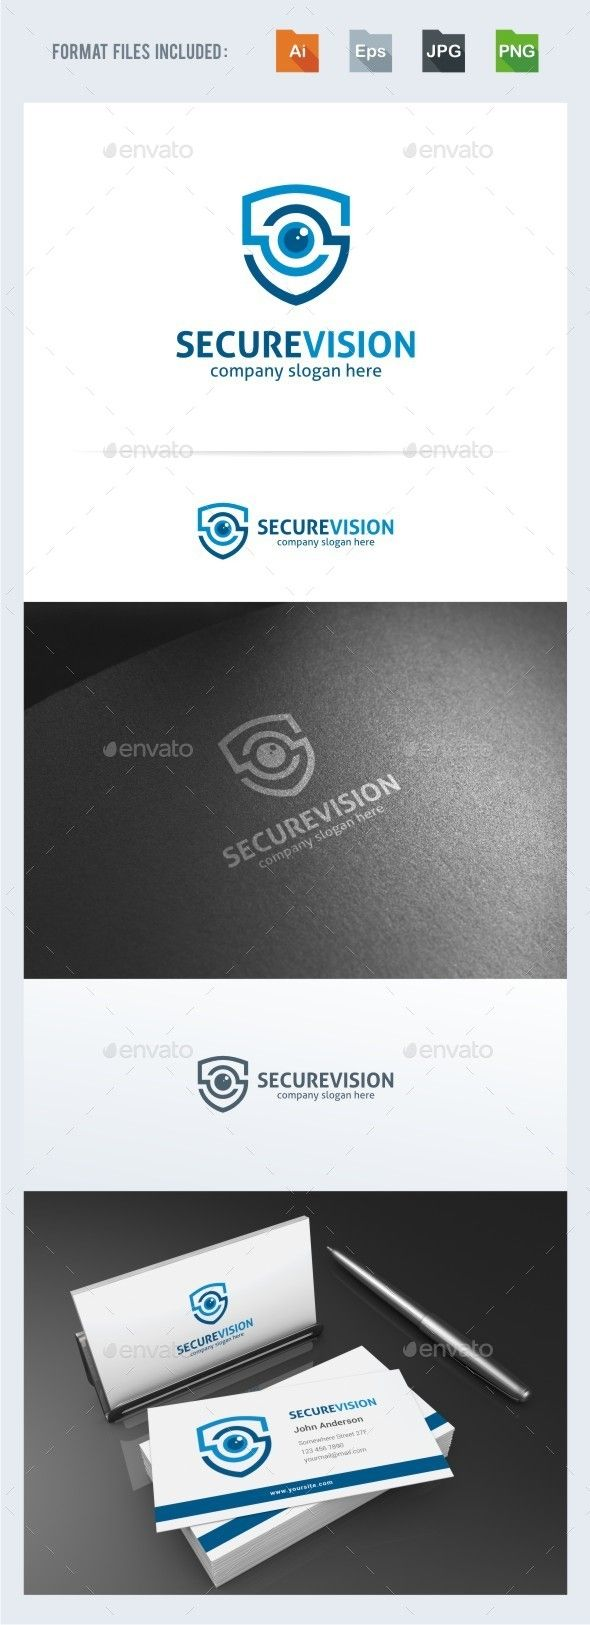 Secure Vision Logo Template — Transparent PNG #cctv #safety • Available here → https://graphicriver.net/item/secure-vision-logo-template/15355496?ref=pxcr